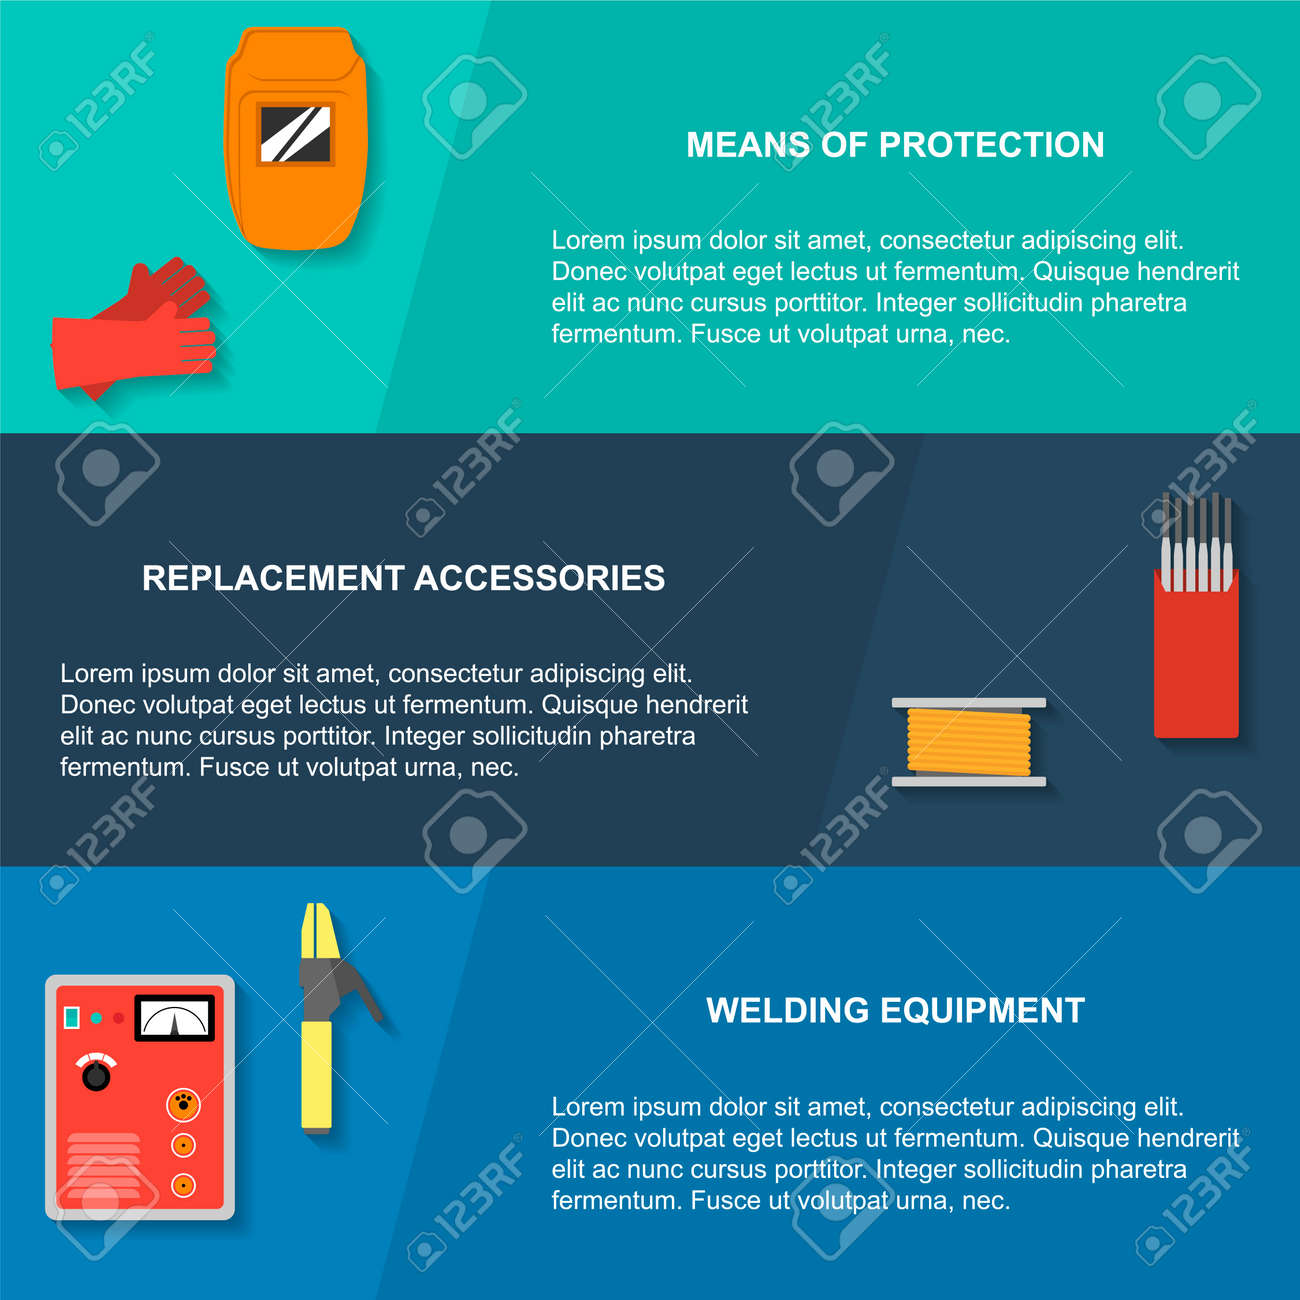 67647936 Welding design concept flat style Banners with welding tools and equipment illustration Stock Vector banner design wiring diagrams wiring diagrams banner photo eye wiring diagram at gsmx.co